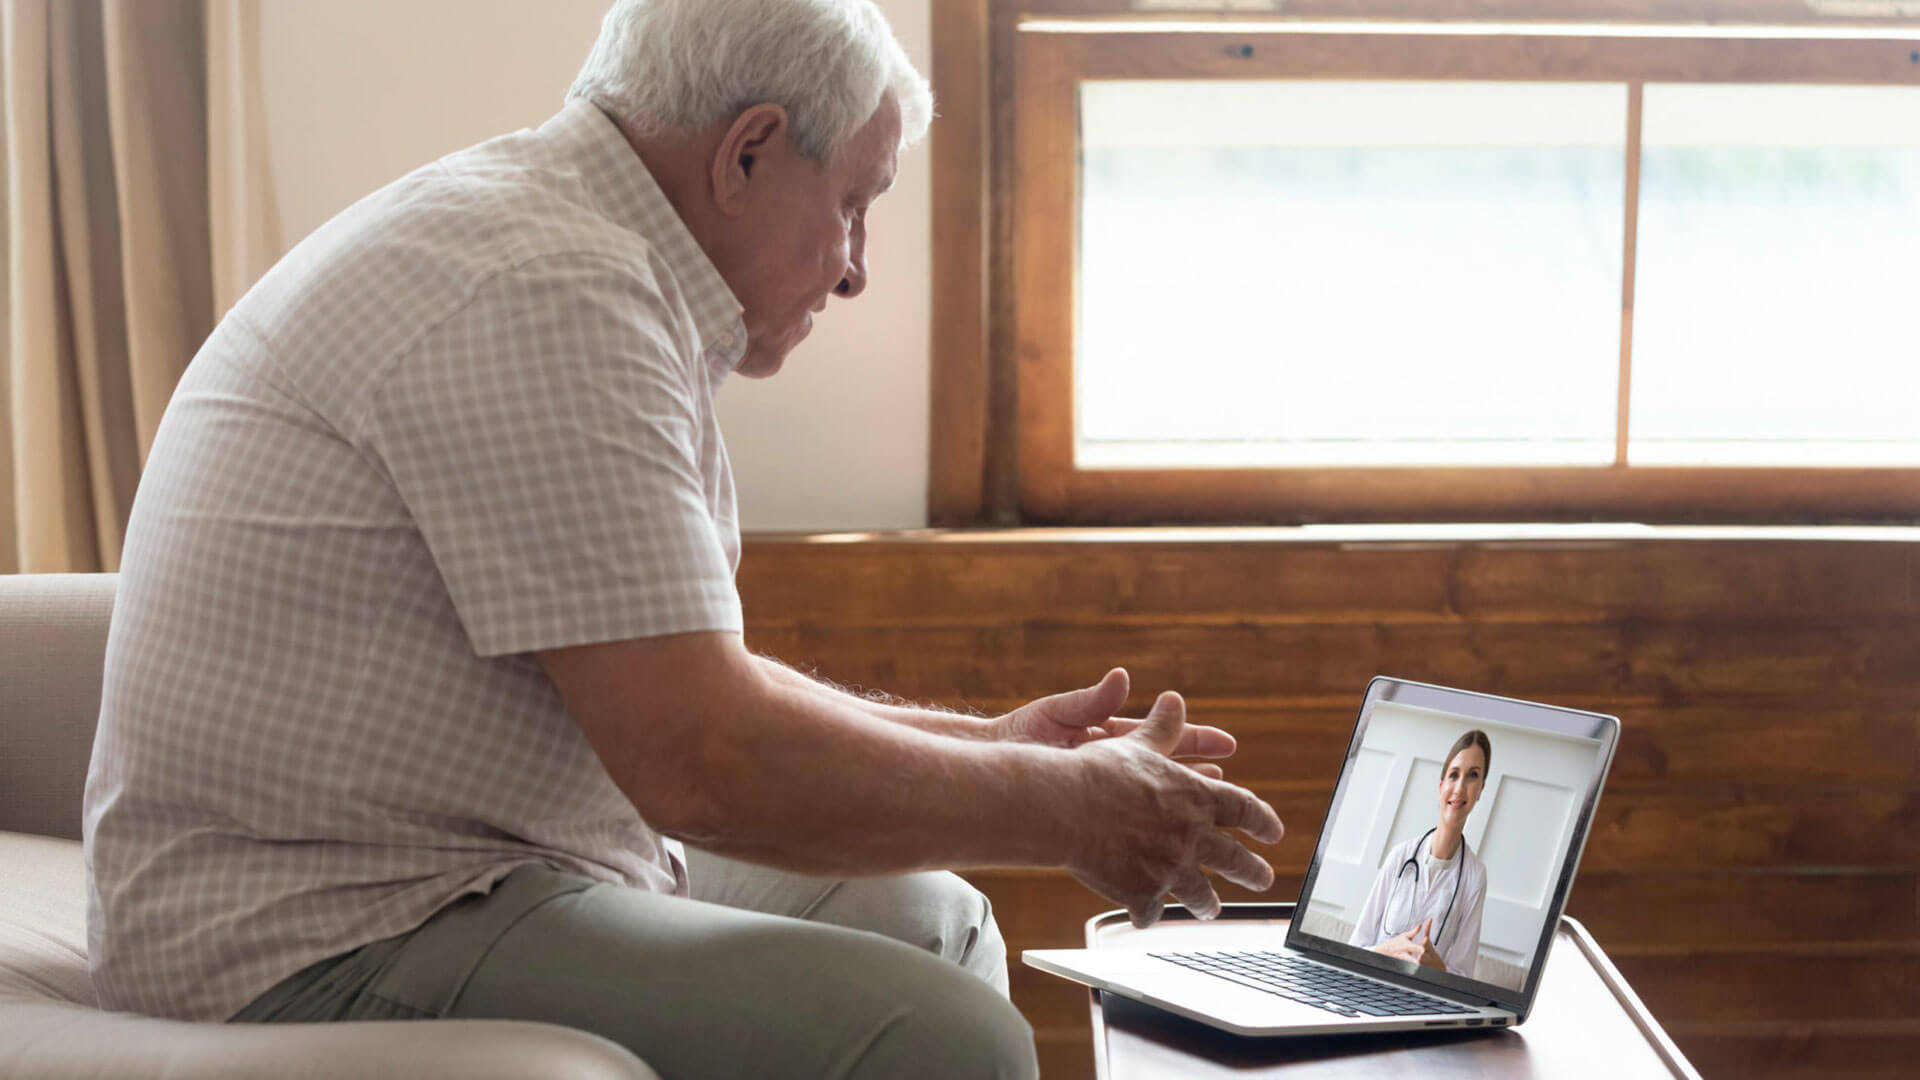 A patient speaking with his doctor via video conference (telemedicine).